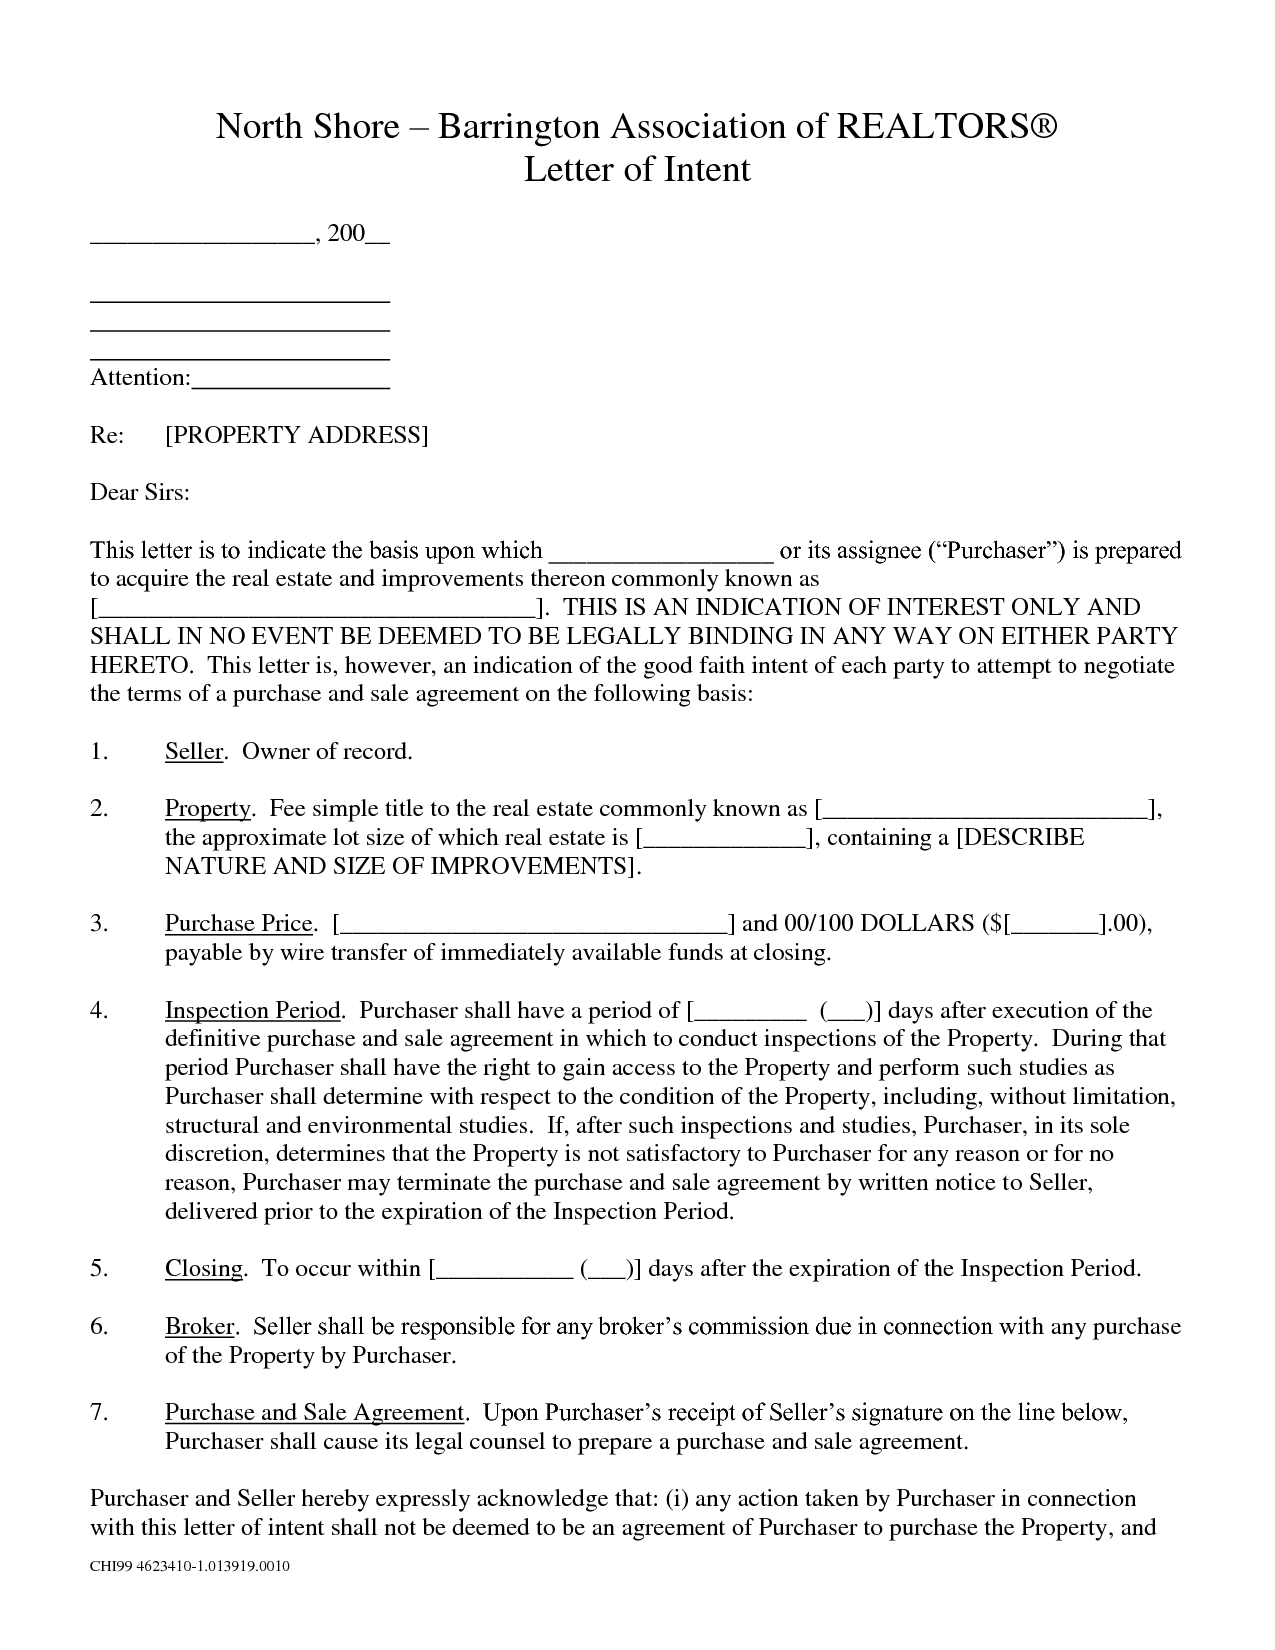 Commercial Real Estate Lease Letter Of Intent Template - Letter Intent Real Estate Lease Mercial to Property form